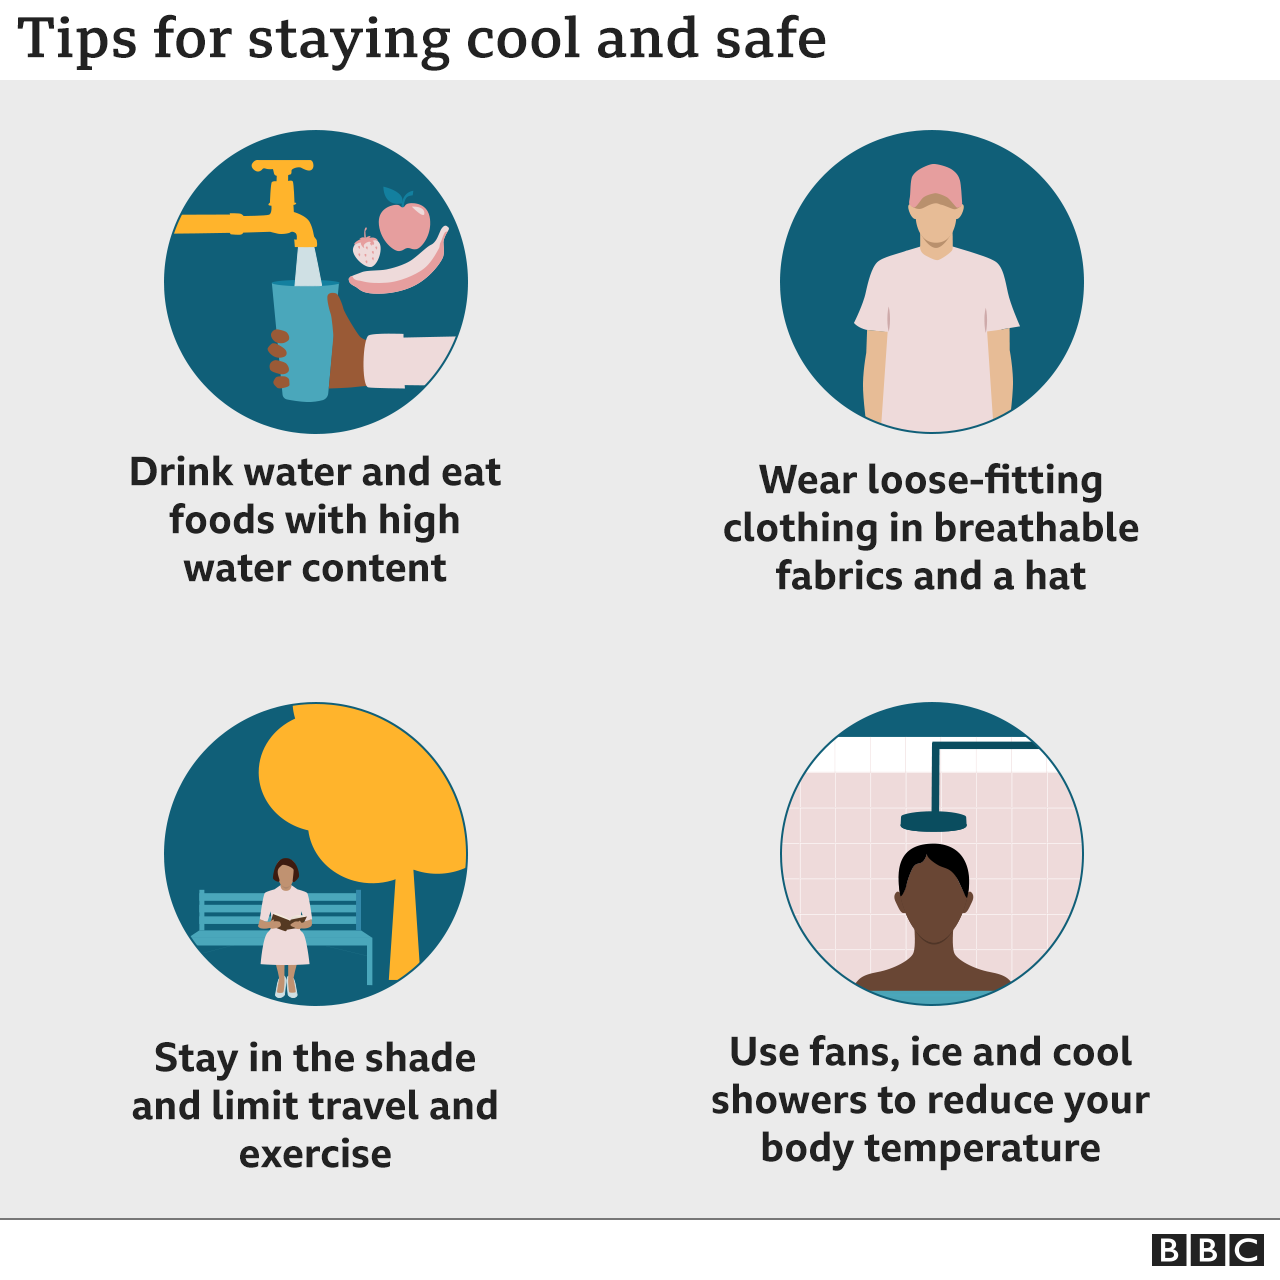 Graphic showing tips for staying cool: drink water; eat foods with high water content; stay in the shade; limit travel and exercise; wear breathable fabrics and a hat; draw curtains and blinds to cool rooms; use fans, ice and cool showers to bring your body temperature down.